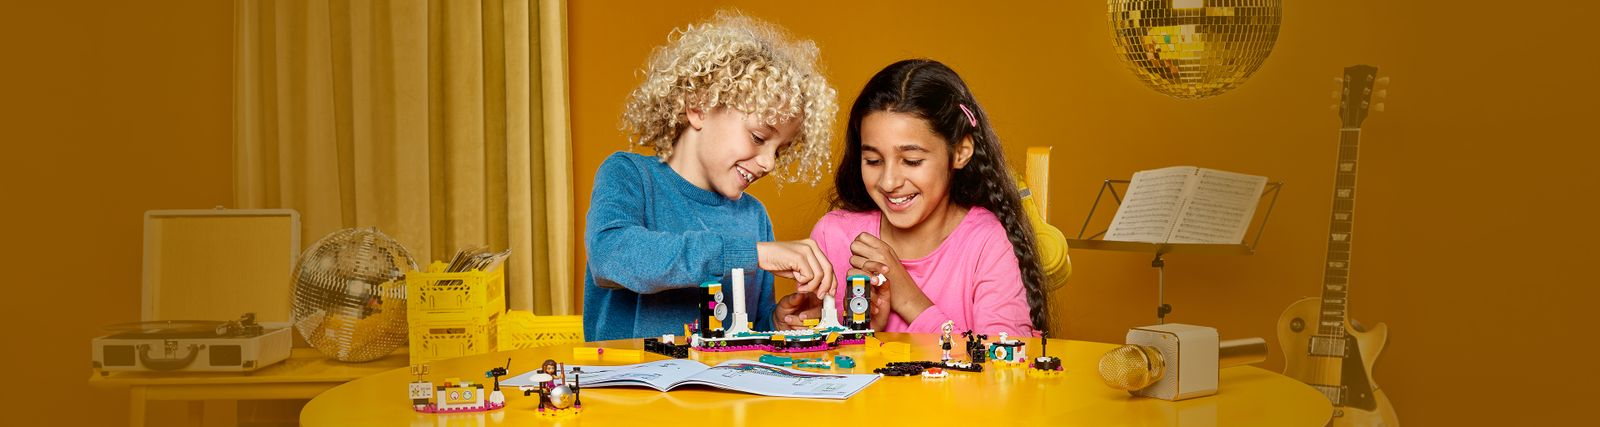 Lego Friends Welcome To Heartlake City Legocom Us